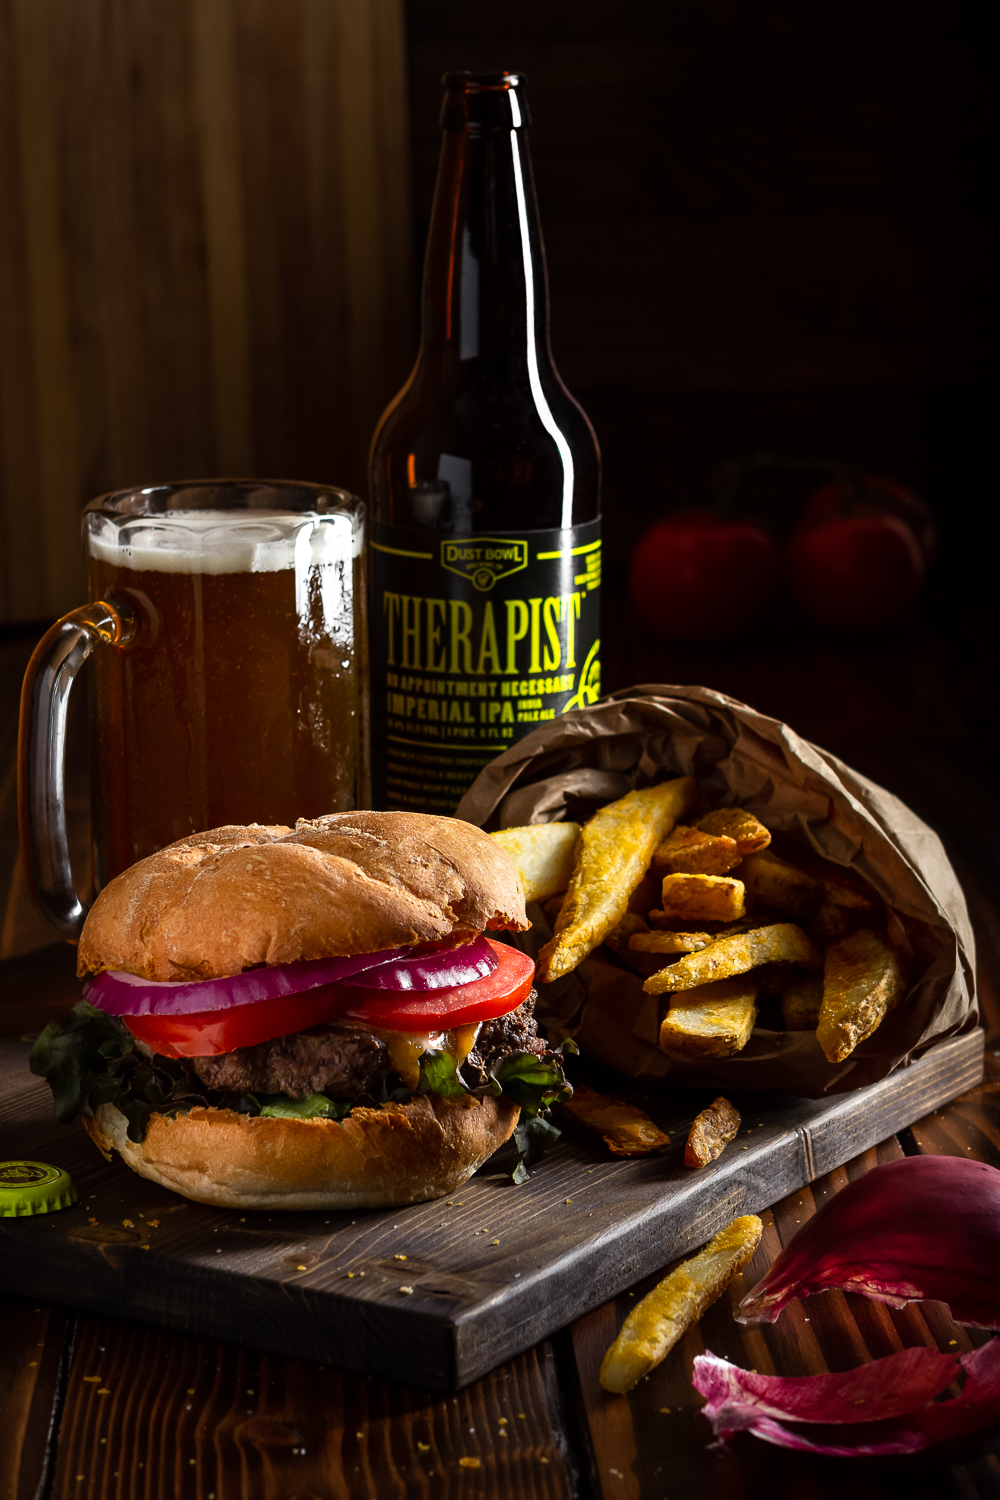 Burger_Fries_and_a_Beer_01.jpg